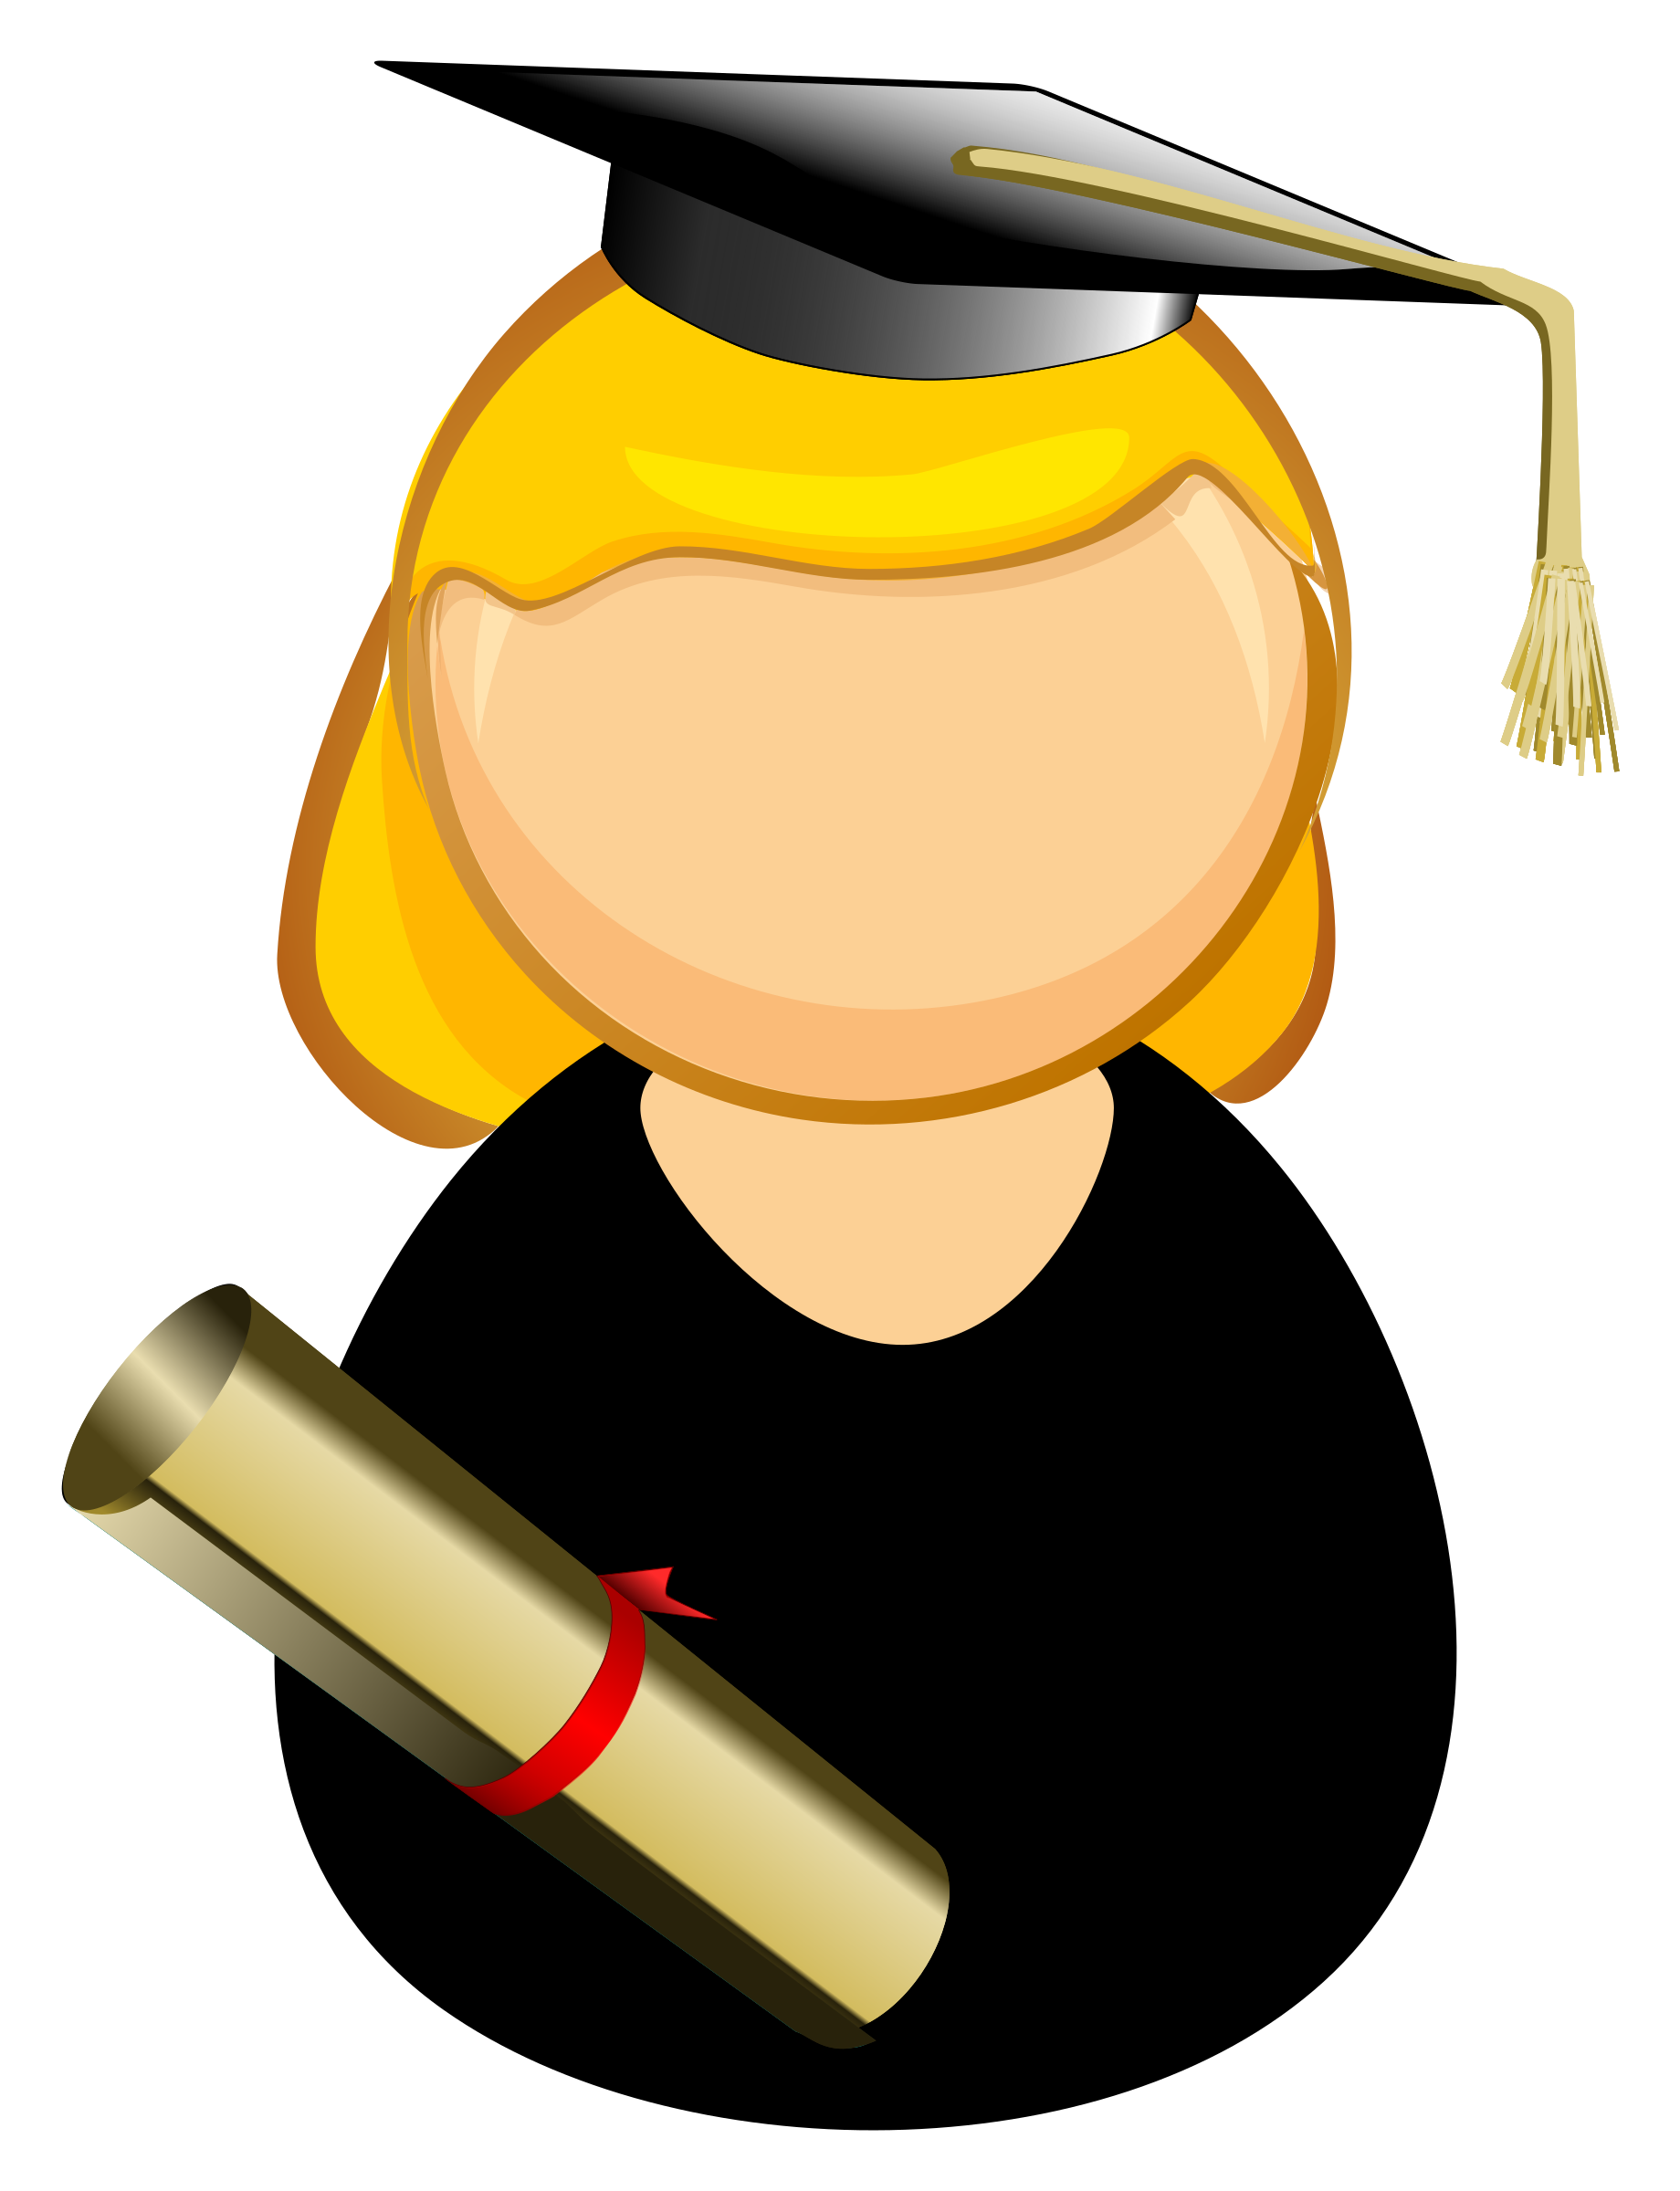 Graduated student icons png. Diploma clipart graphic